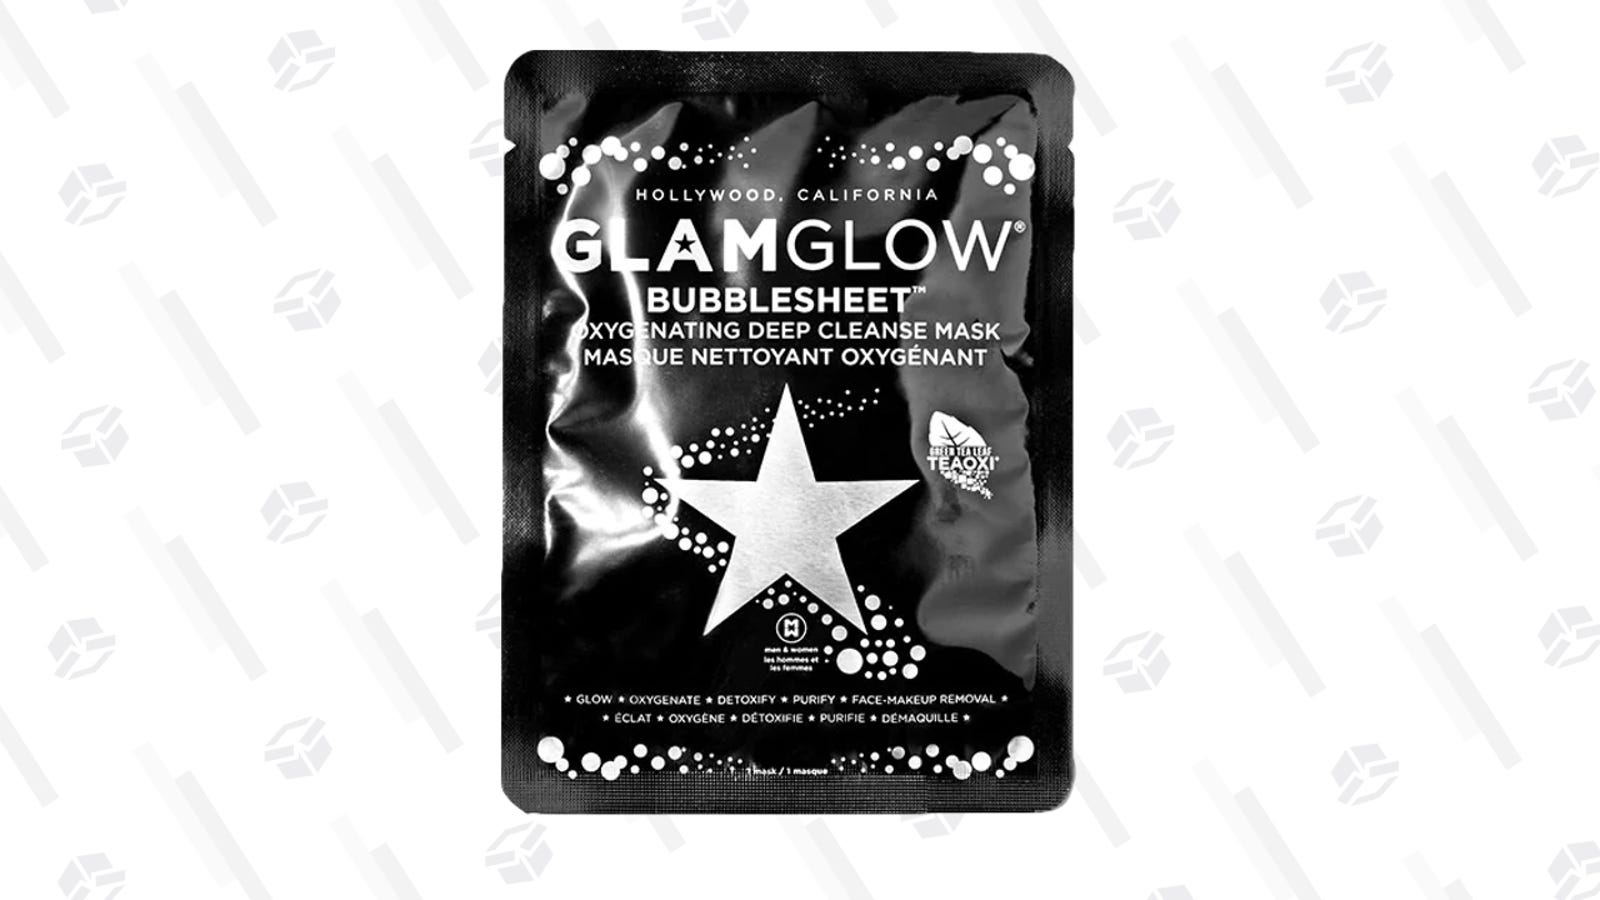 BubbleSheet Mask | $9 | GlamGlow